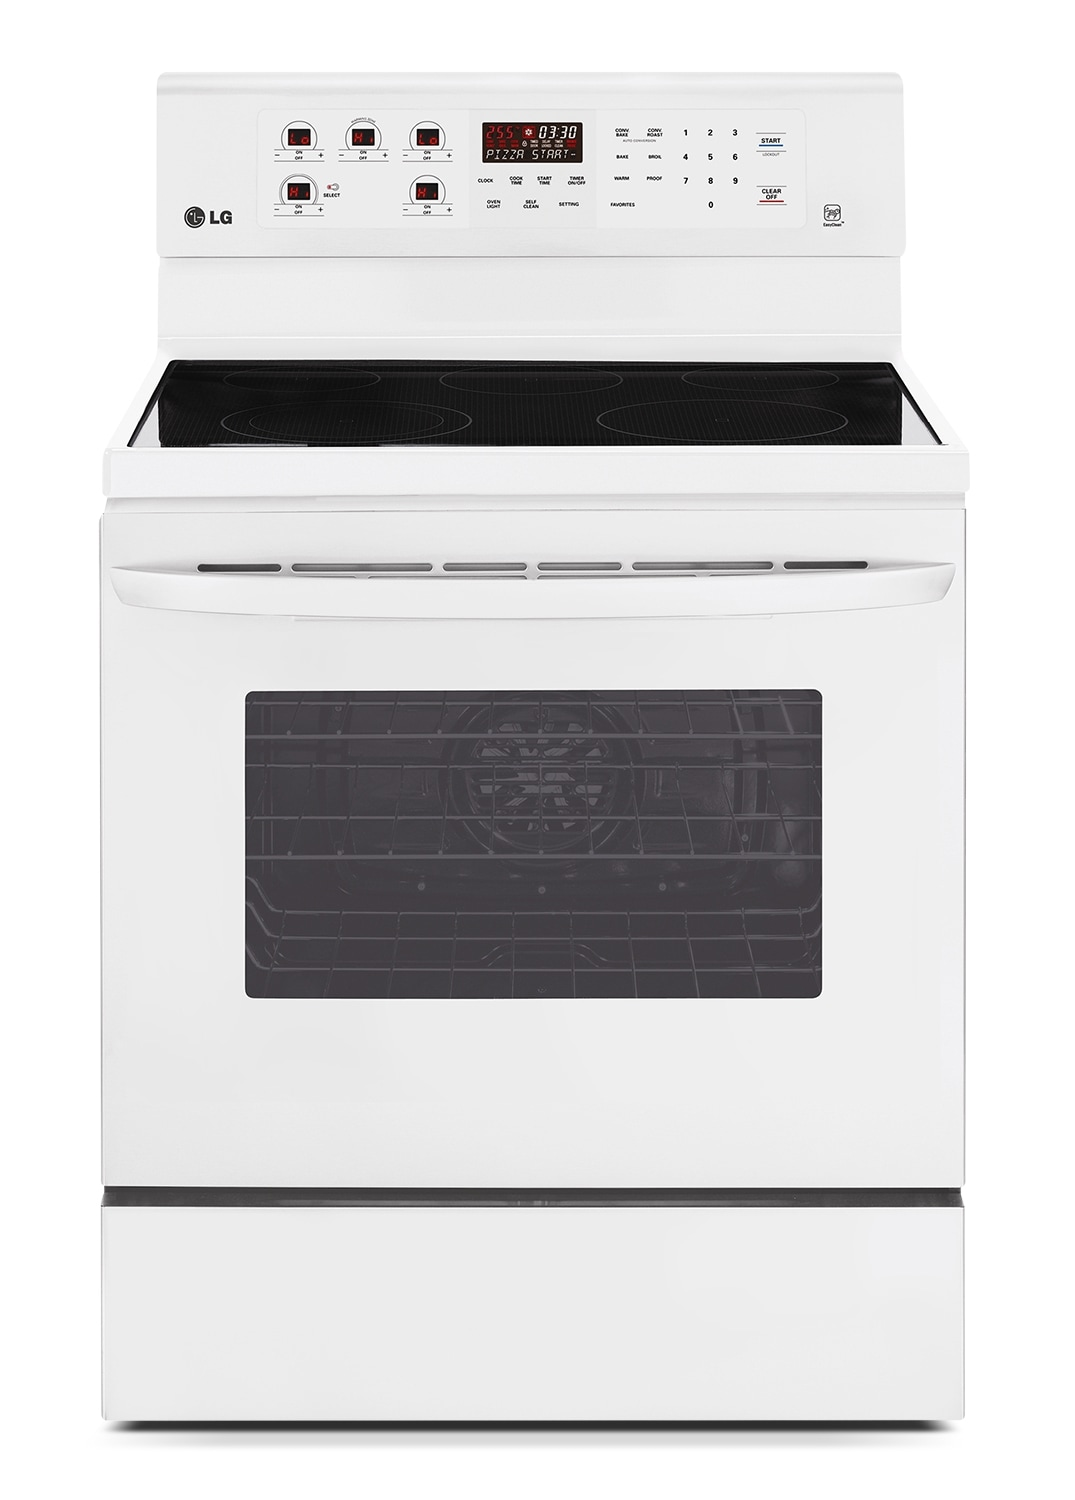 Cooking Products - LG Appliances White Freestanding Electric Convection Range (6.3 Cu. Ft.) - LRE6383SW